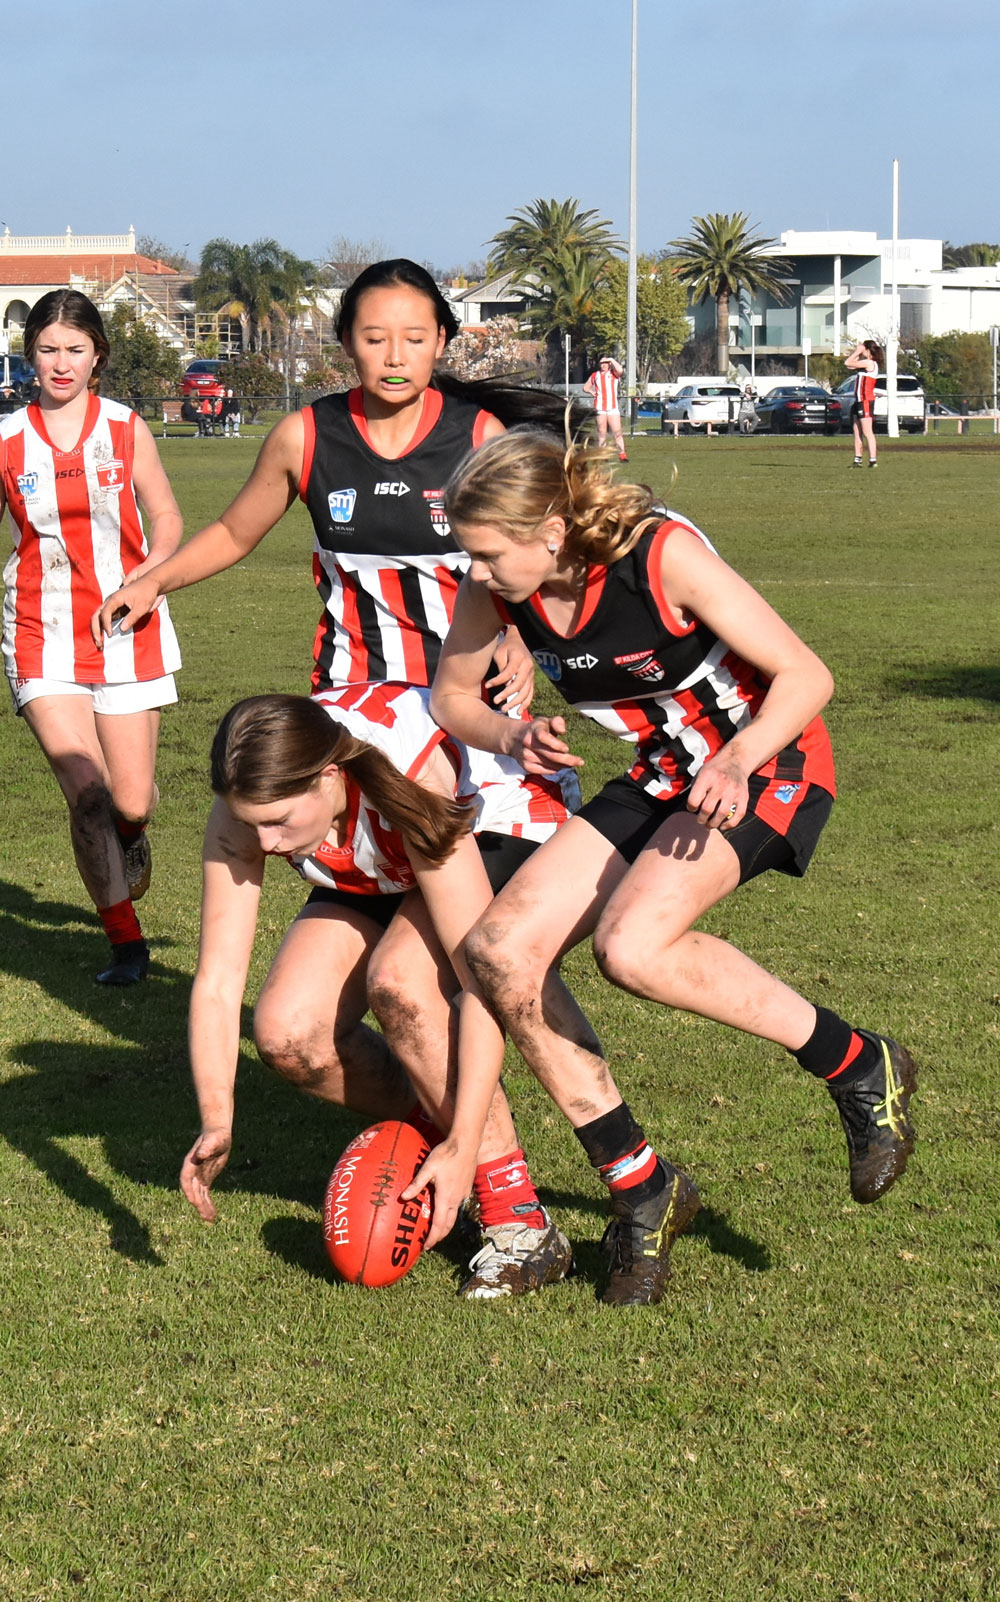 Club Policies - / Teams Policy (2019)/ Coaching Appointments Policy (2018)/ Representative Football Policy (2015)/ Awards Guidelines (2018)/ AFL Concussion Management Policy/ Child Safe Code of Conduct (2018)/ SMJFL Child Empowerment Initiatives (2018)/ Child Incident-Reporting-Procedure (2018)/ Child Safe Recruitment Policy (2019)/ Child Safety Policy (2018)/ Child Safe Mission Statement (2018)/ Grievance Procedure (2012)/ Alcohol Management Policy (2012)/ Racial and Religious Tolerance Policy (2018)/ Smoke Free Policy (2012)